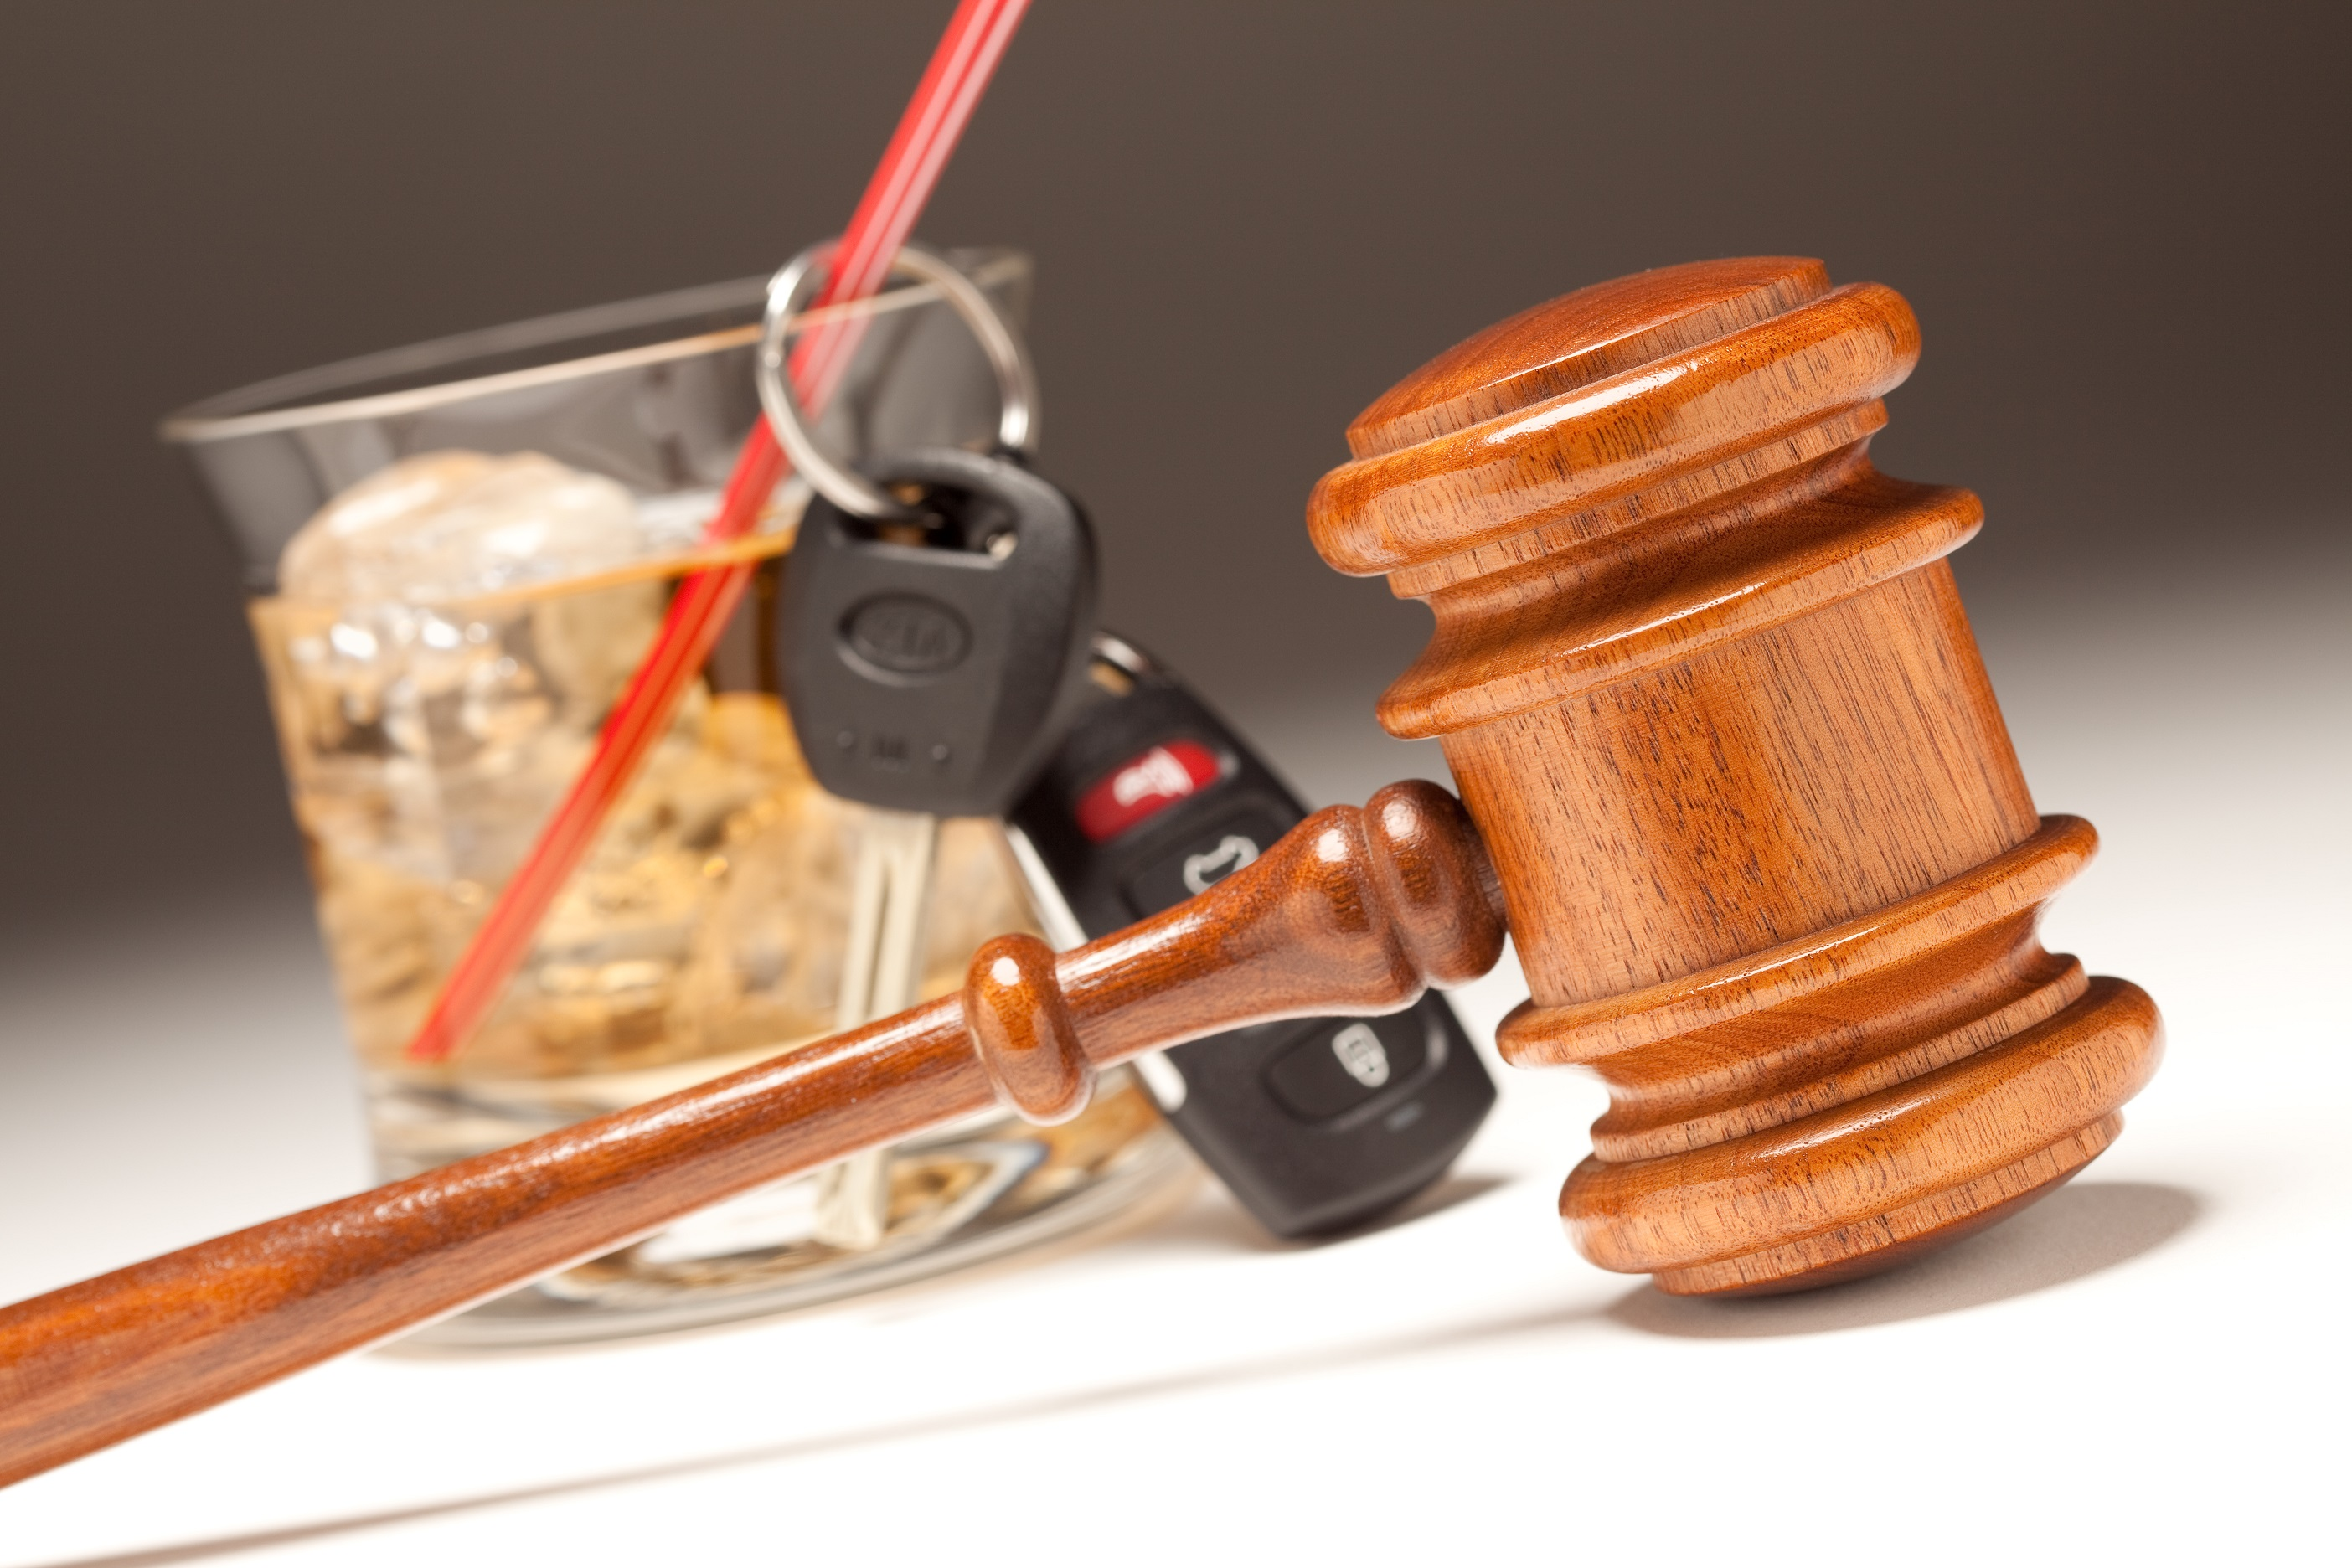 Gavel, Alcoholic Drink and Car Keys